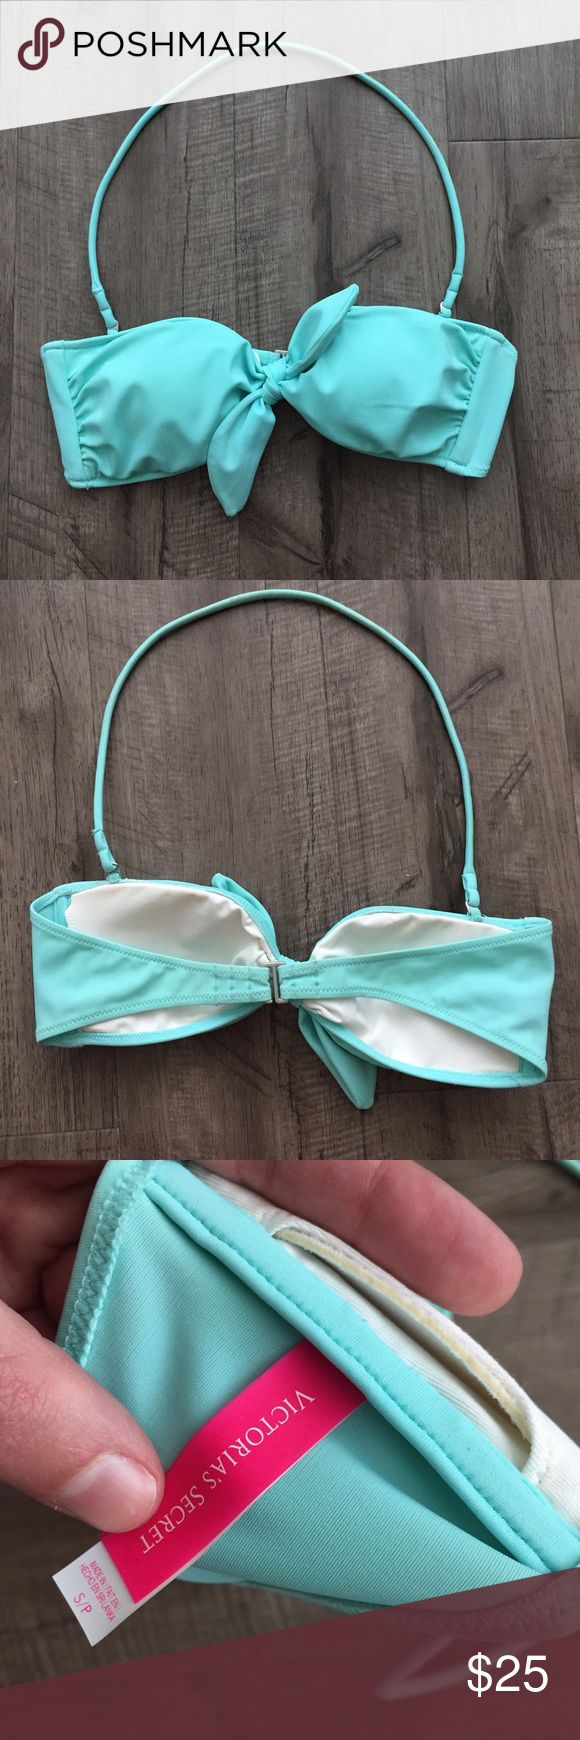 Victoria Secret Bow Bandeau Top Victoria Secret Bow Bandeau Top in aqua with removable halter strap and removable padding. Worn once so in great condition, didn't like the fit/style for myself. Victoria's Secret Swim Bikinis